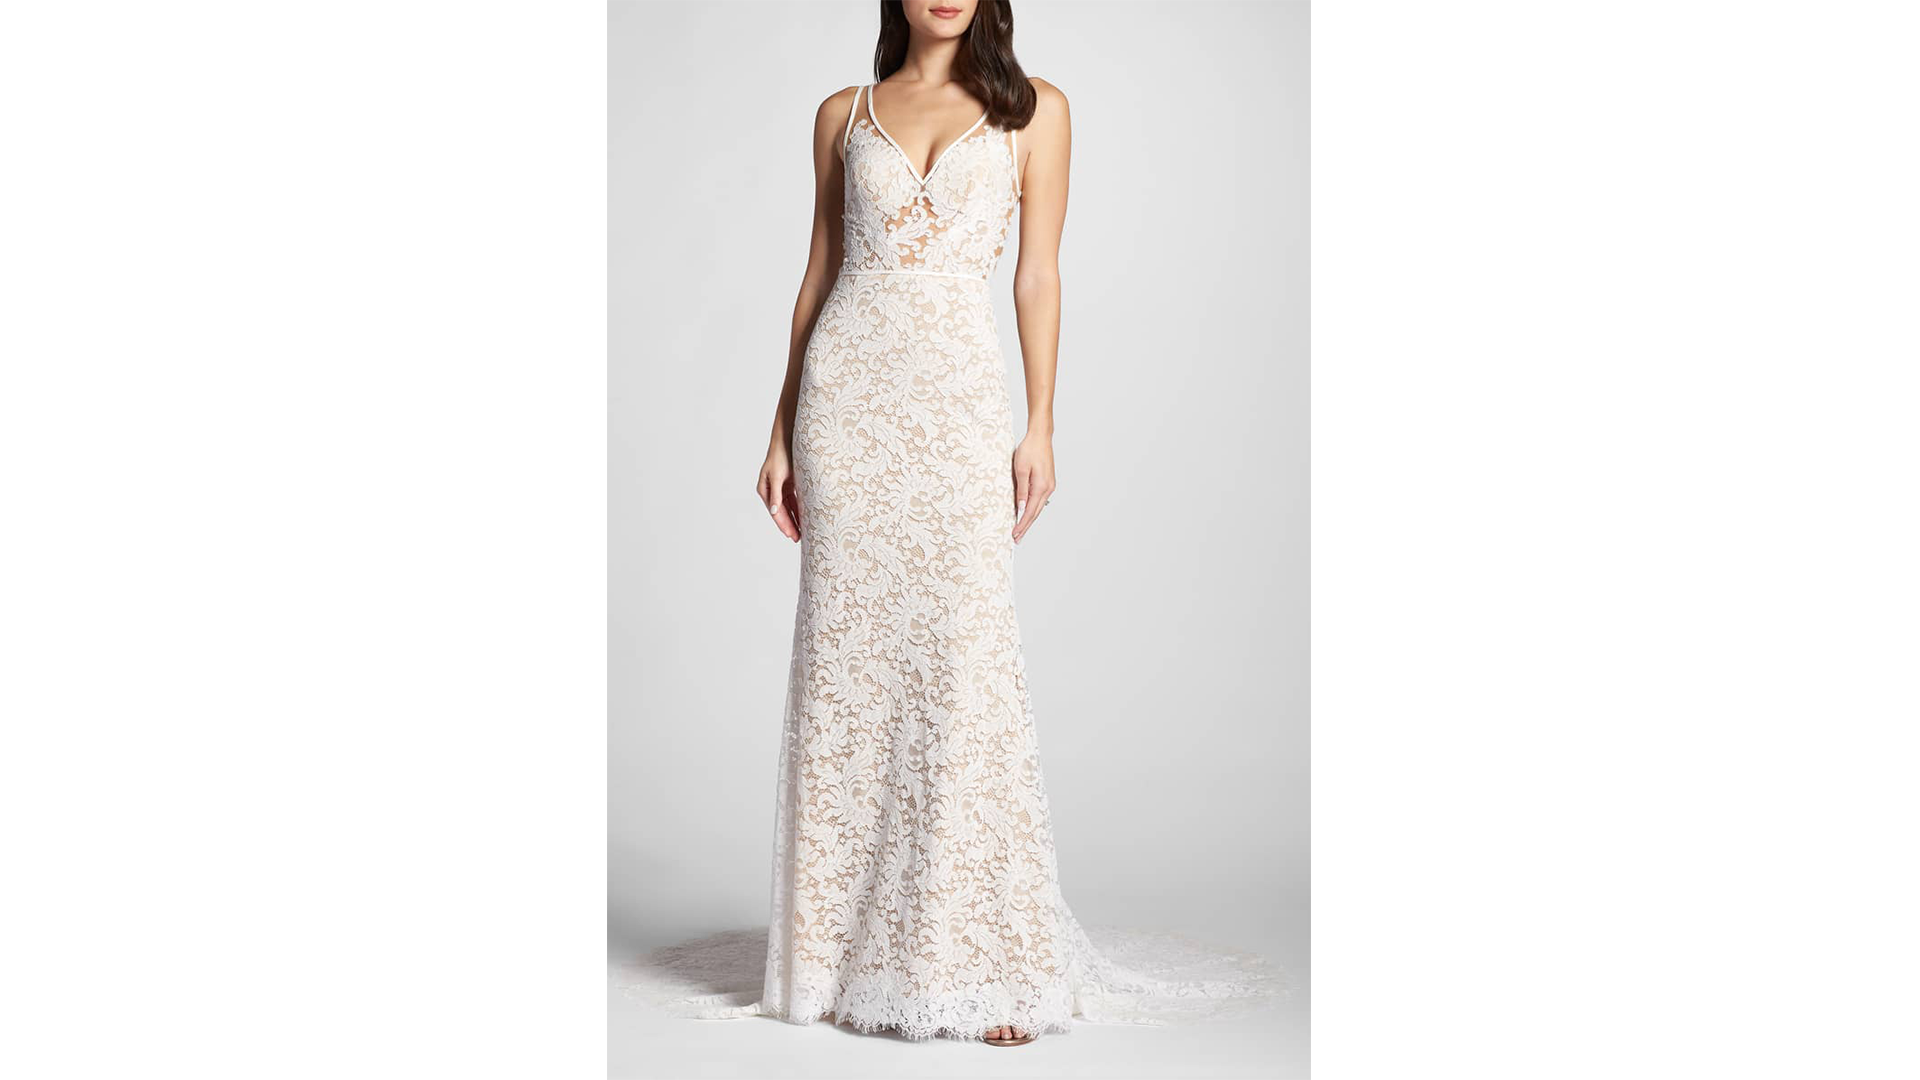 Derica Lace Gown